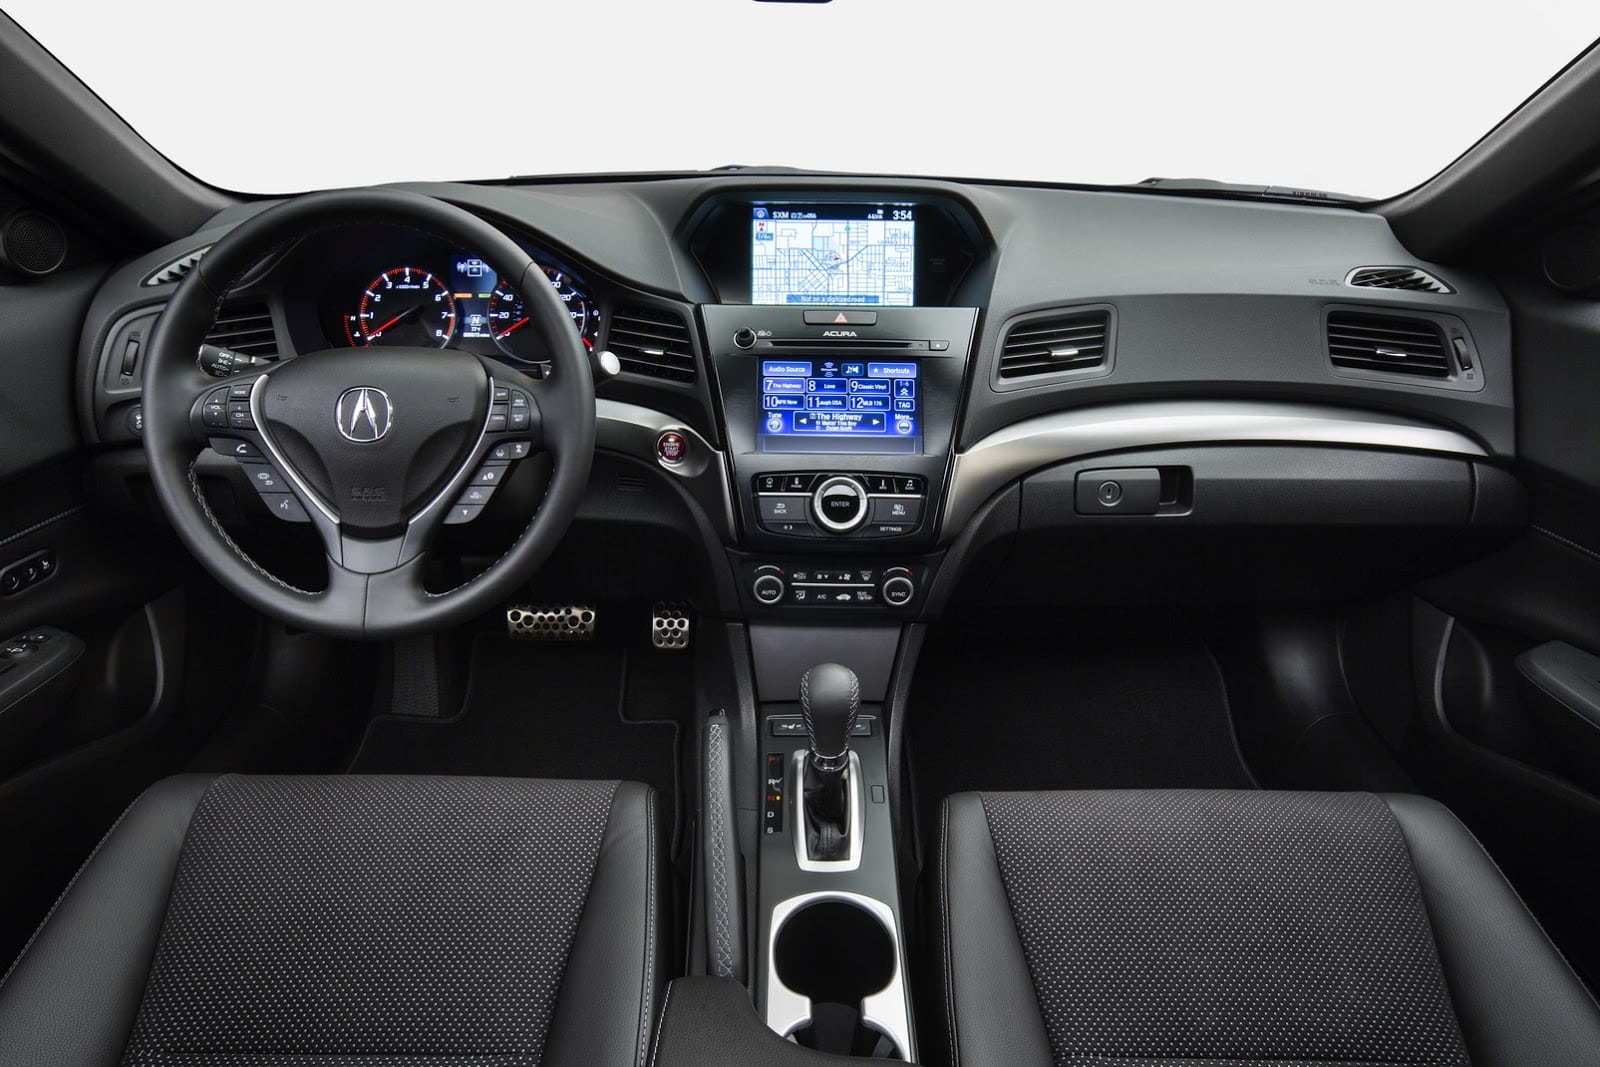 acura review package workmans advance rdx suv car photo and crossover gallery hot seller w reviews price drive article